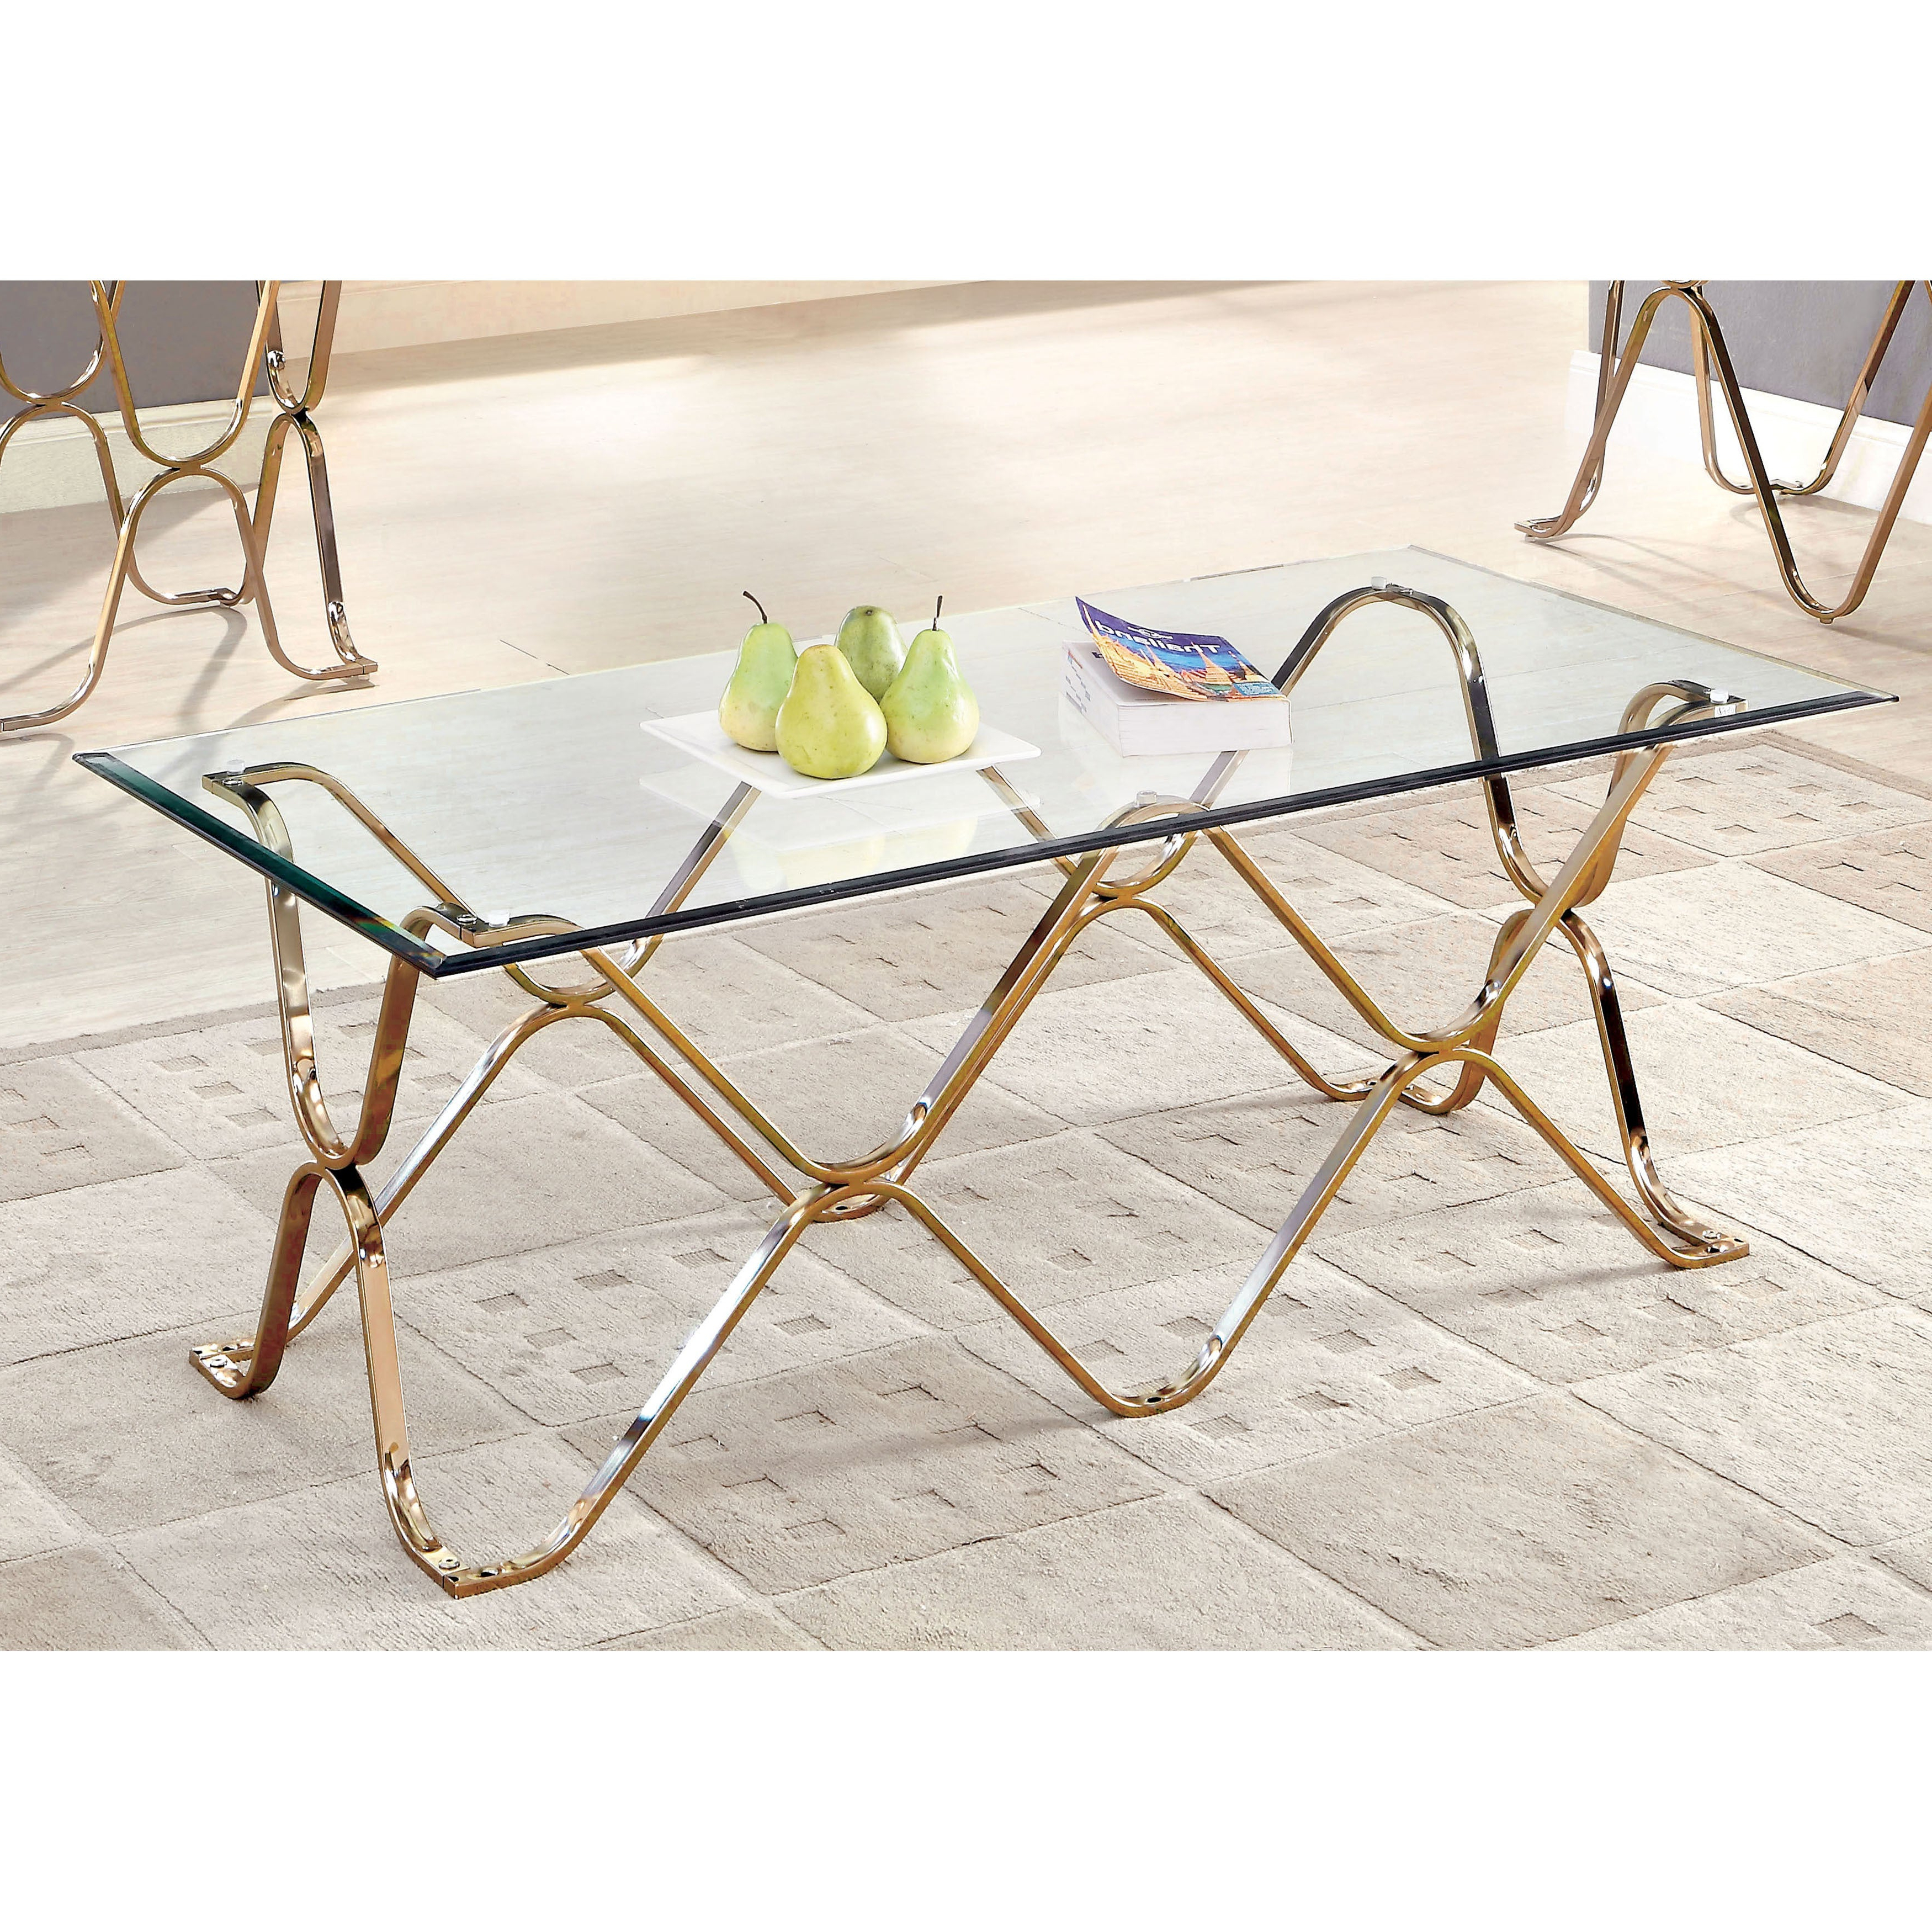 Furniture Of America Tellarie Contemporary Champagne Coffee Table Pertaining To Favorite Furniture Of America Tellarie Contemporary Chrome Coffee Tables (View 12 of 20)